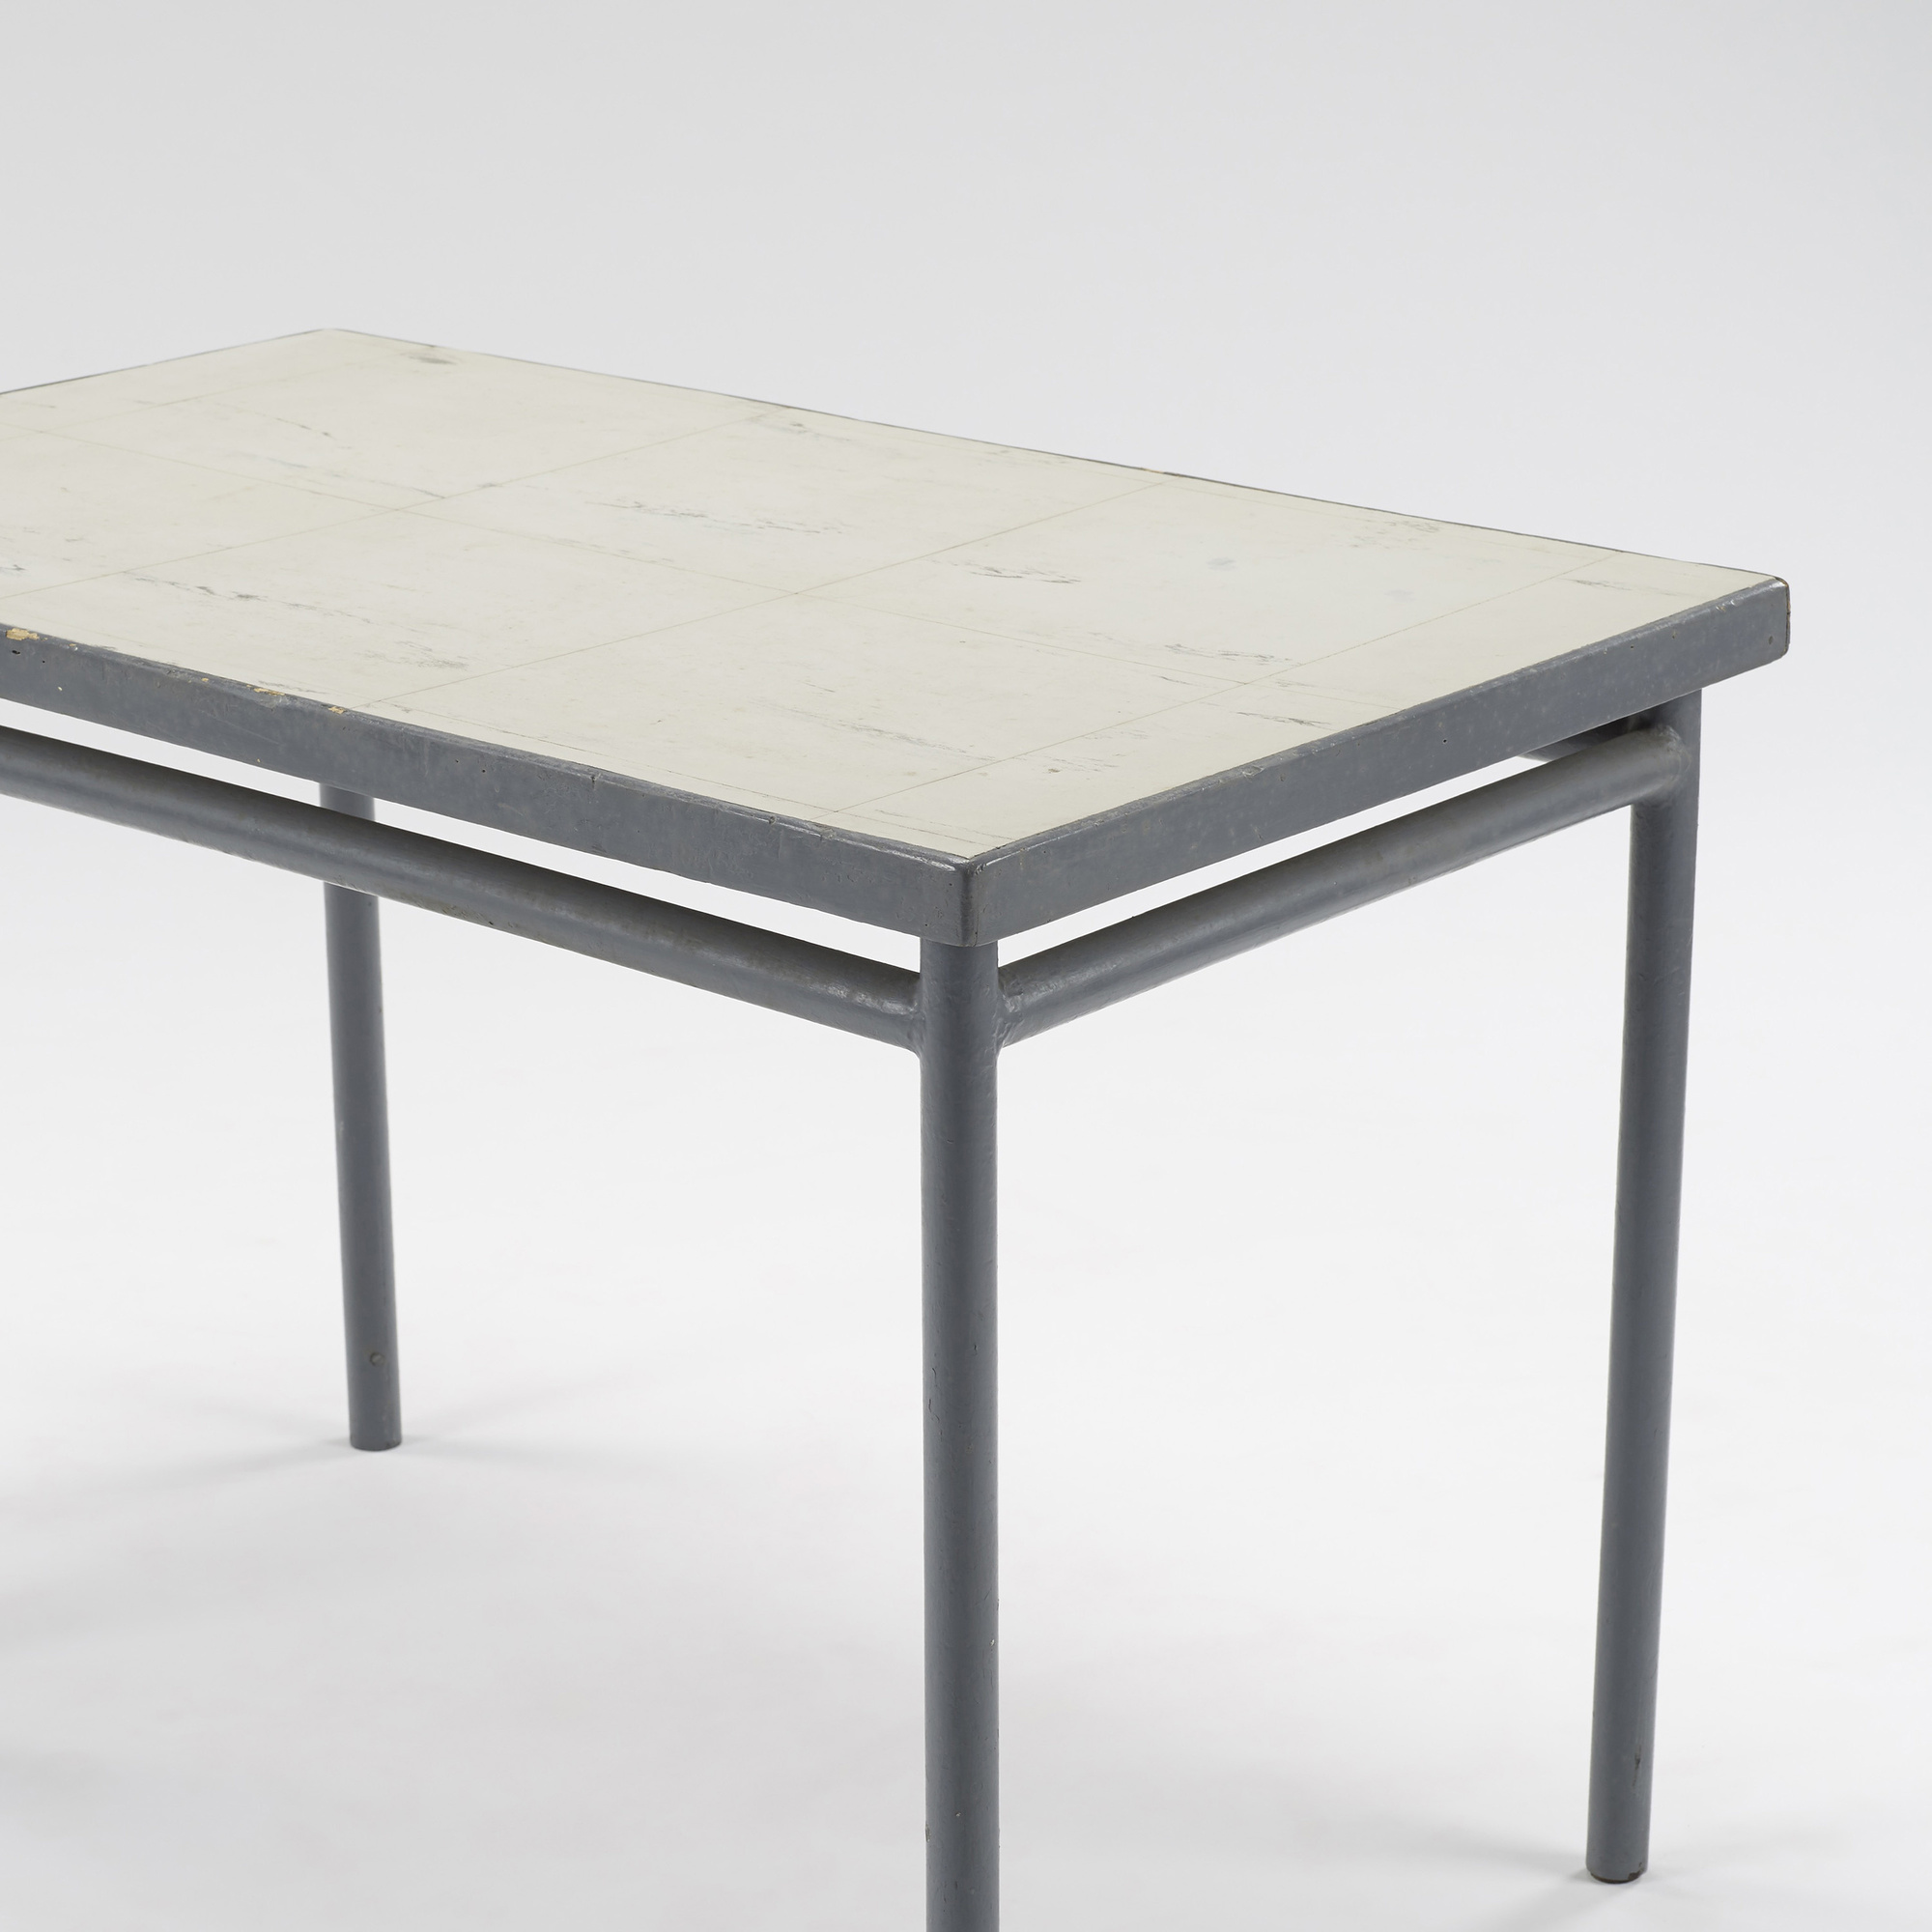 106 Le Corbusier Table From Cit De Refuge De L 39 Arm E Du Salut Paris